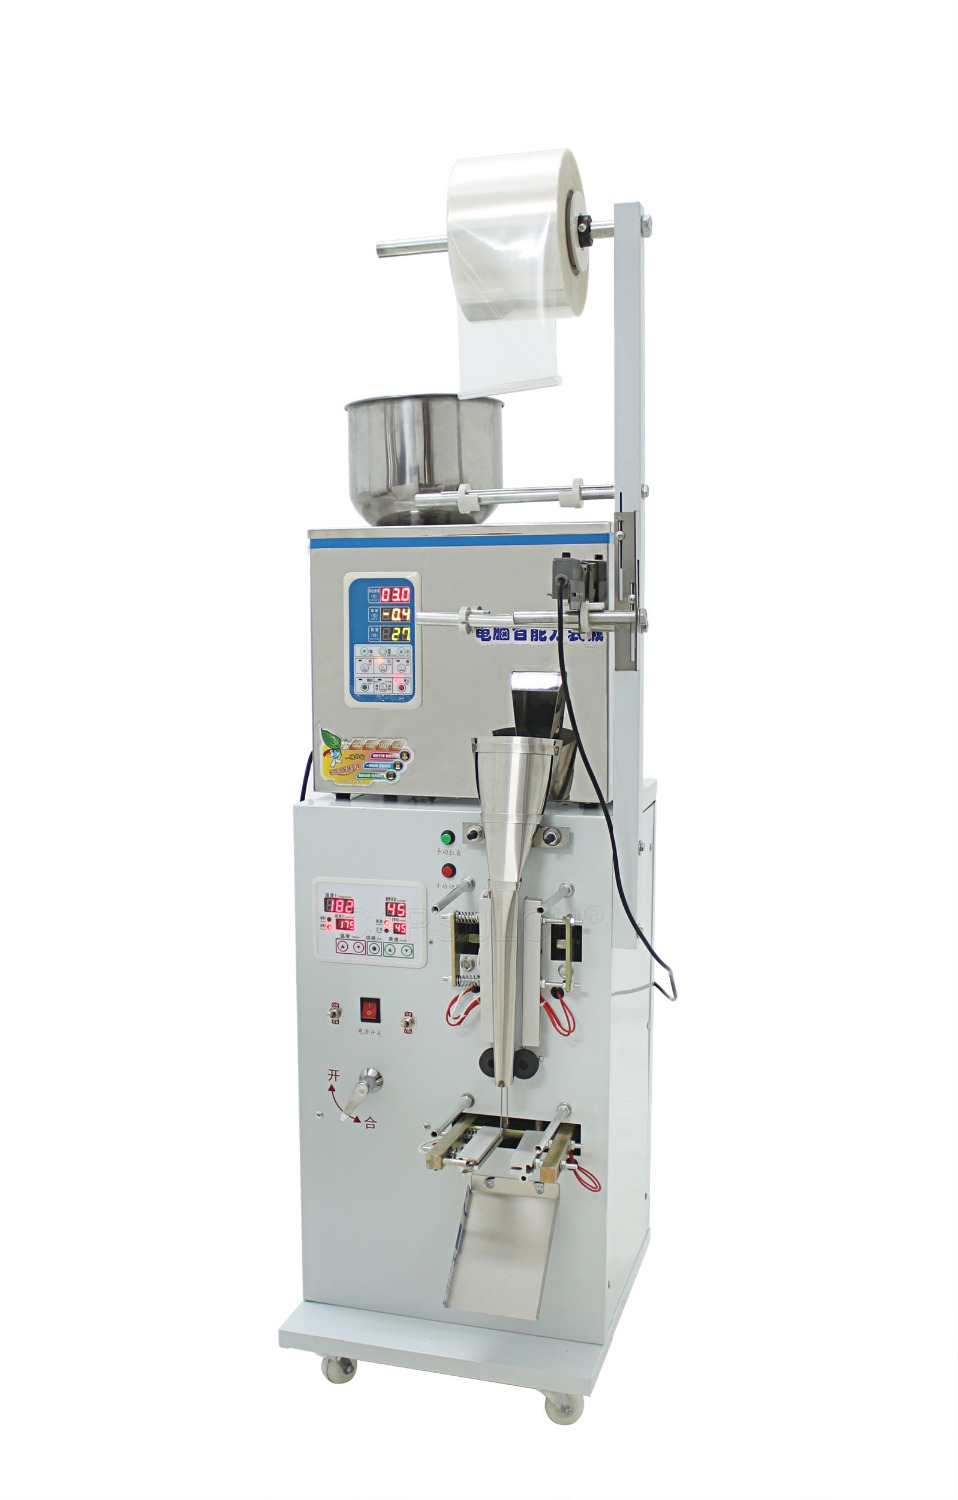 (FZ-0)1-20g Automatic Tea Bag Packing Machine/Filling Machine/Automatic Sealing Machine Granule 1 50g tea packaging machine sachet filling machine can filling machine granule medlar automatic weighing machine powder filler